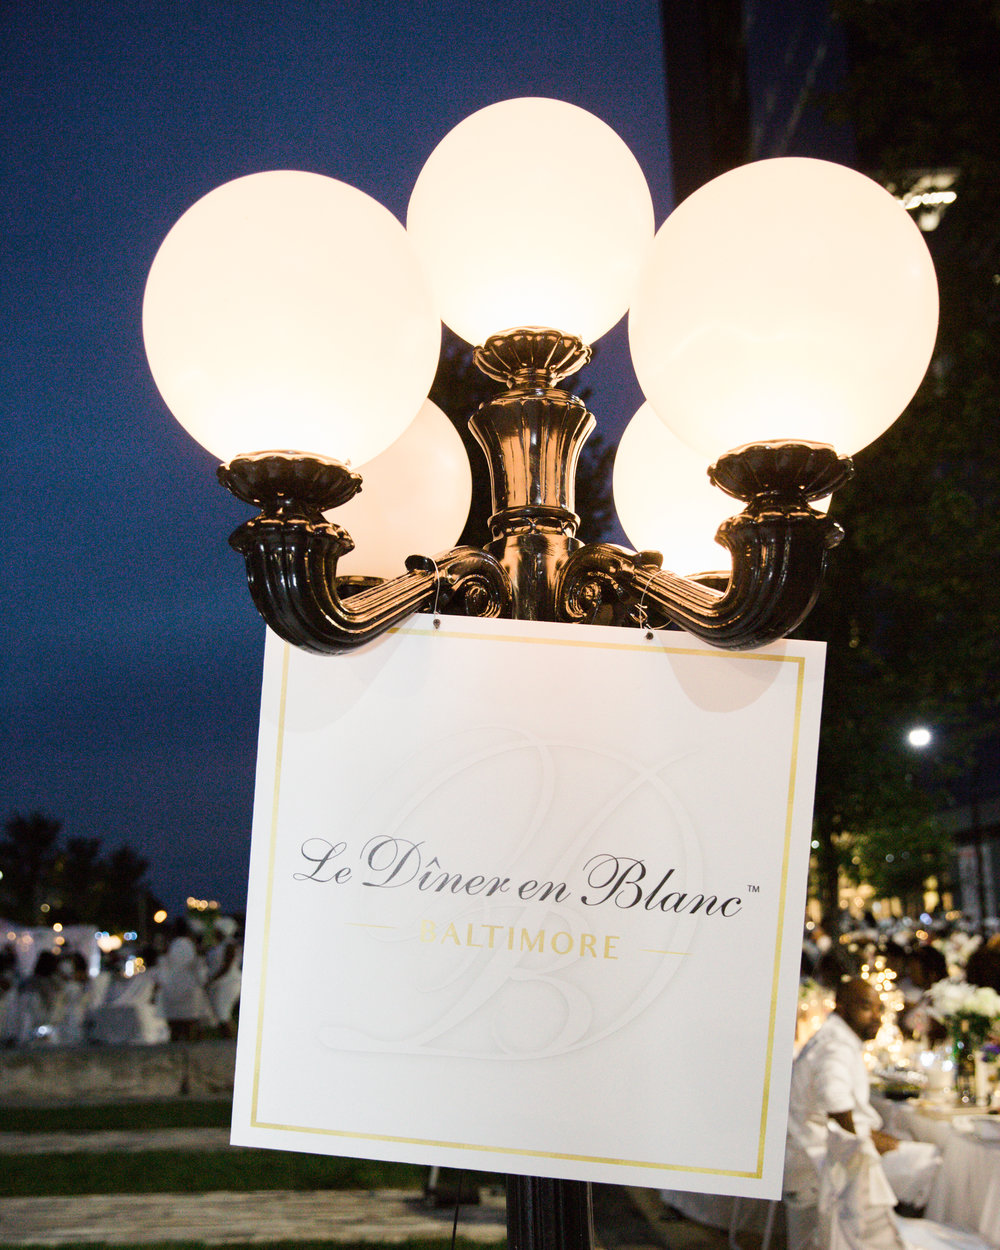 Diner En Blanc Baltimore Megapixels Media Photography-70.jpg